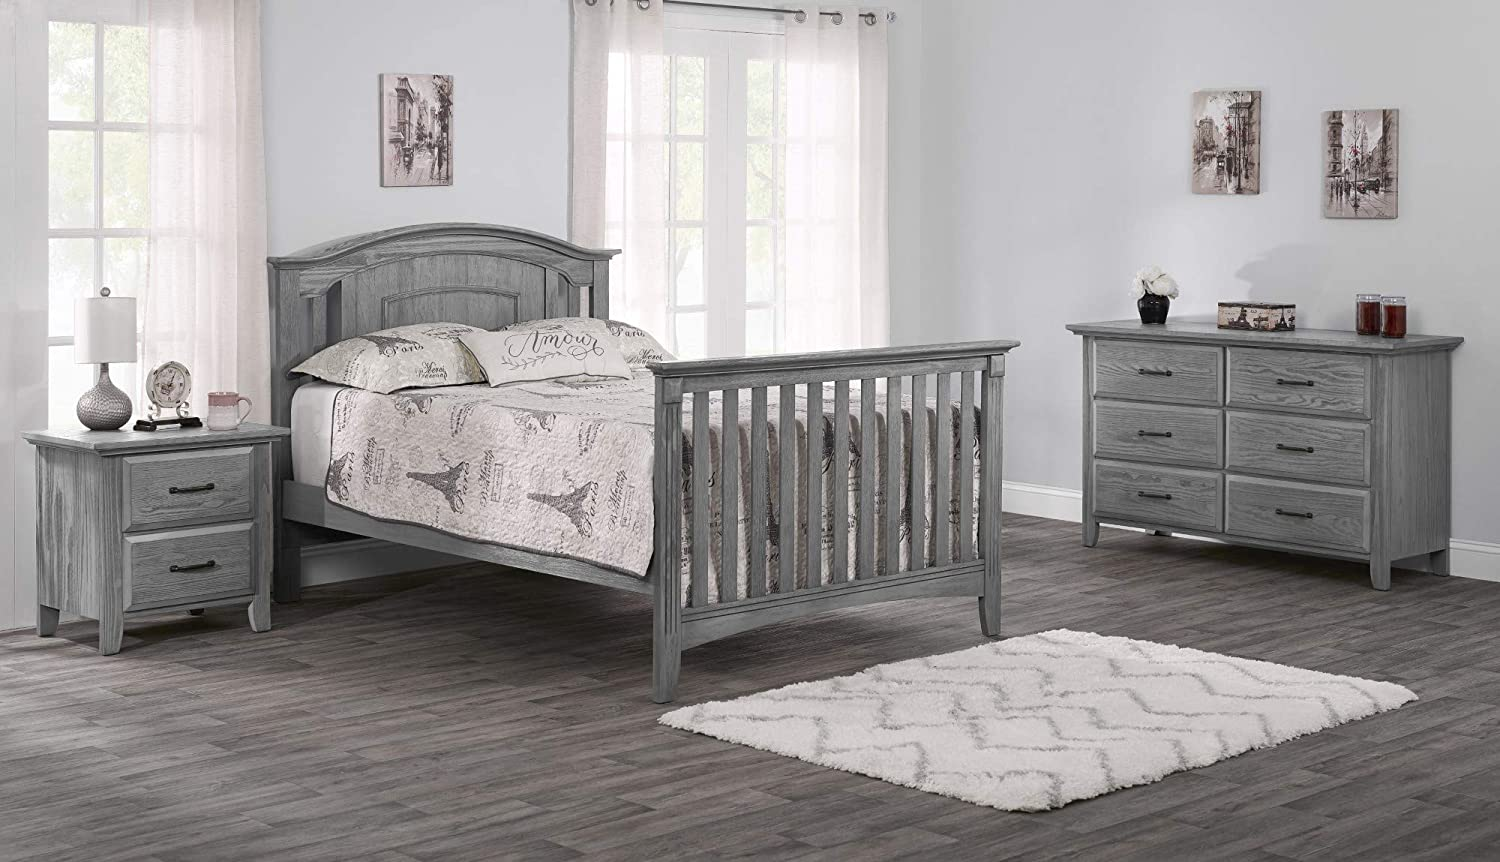 Full Size Conversion Kit Bed Rails for Oxford Baby Cribs Brushed Gray